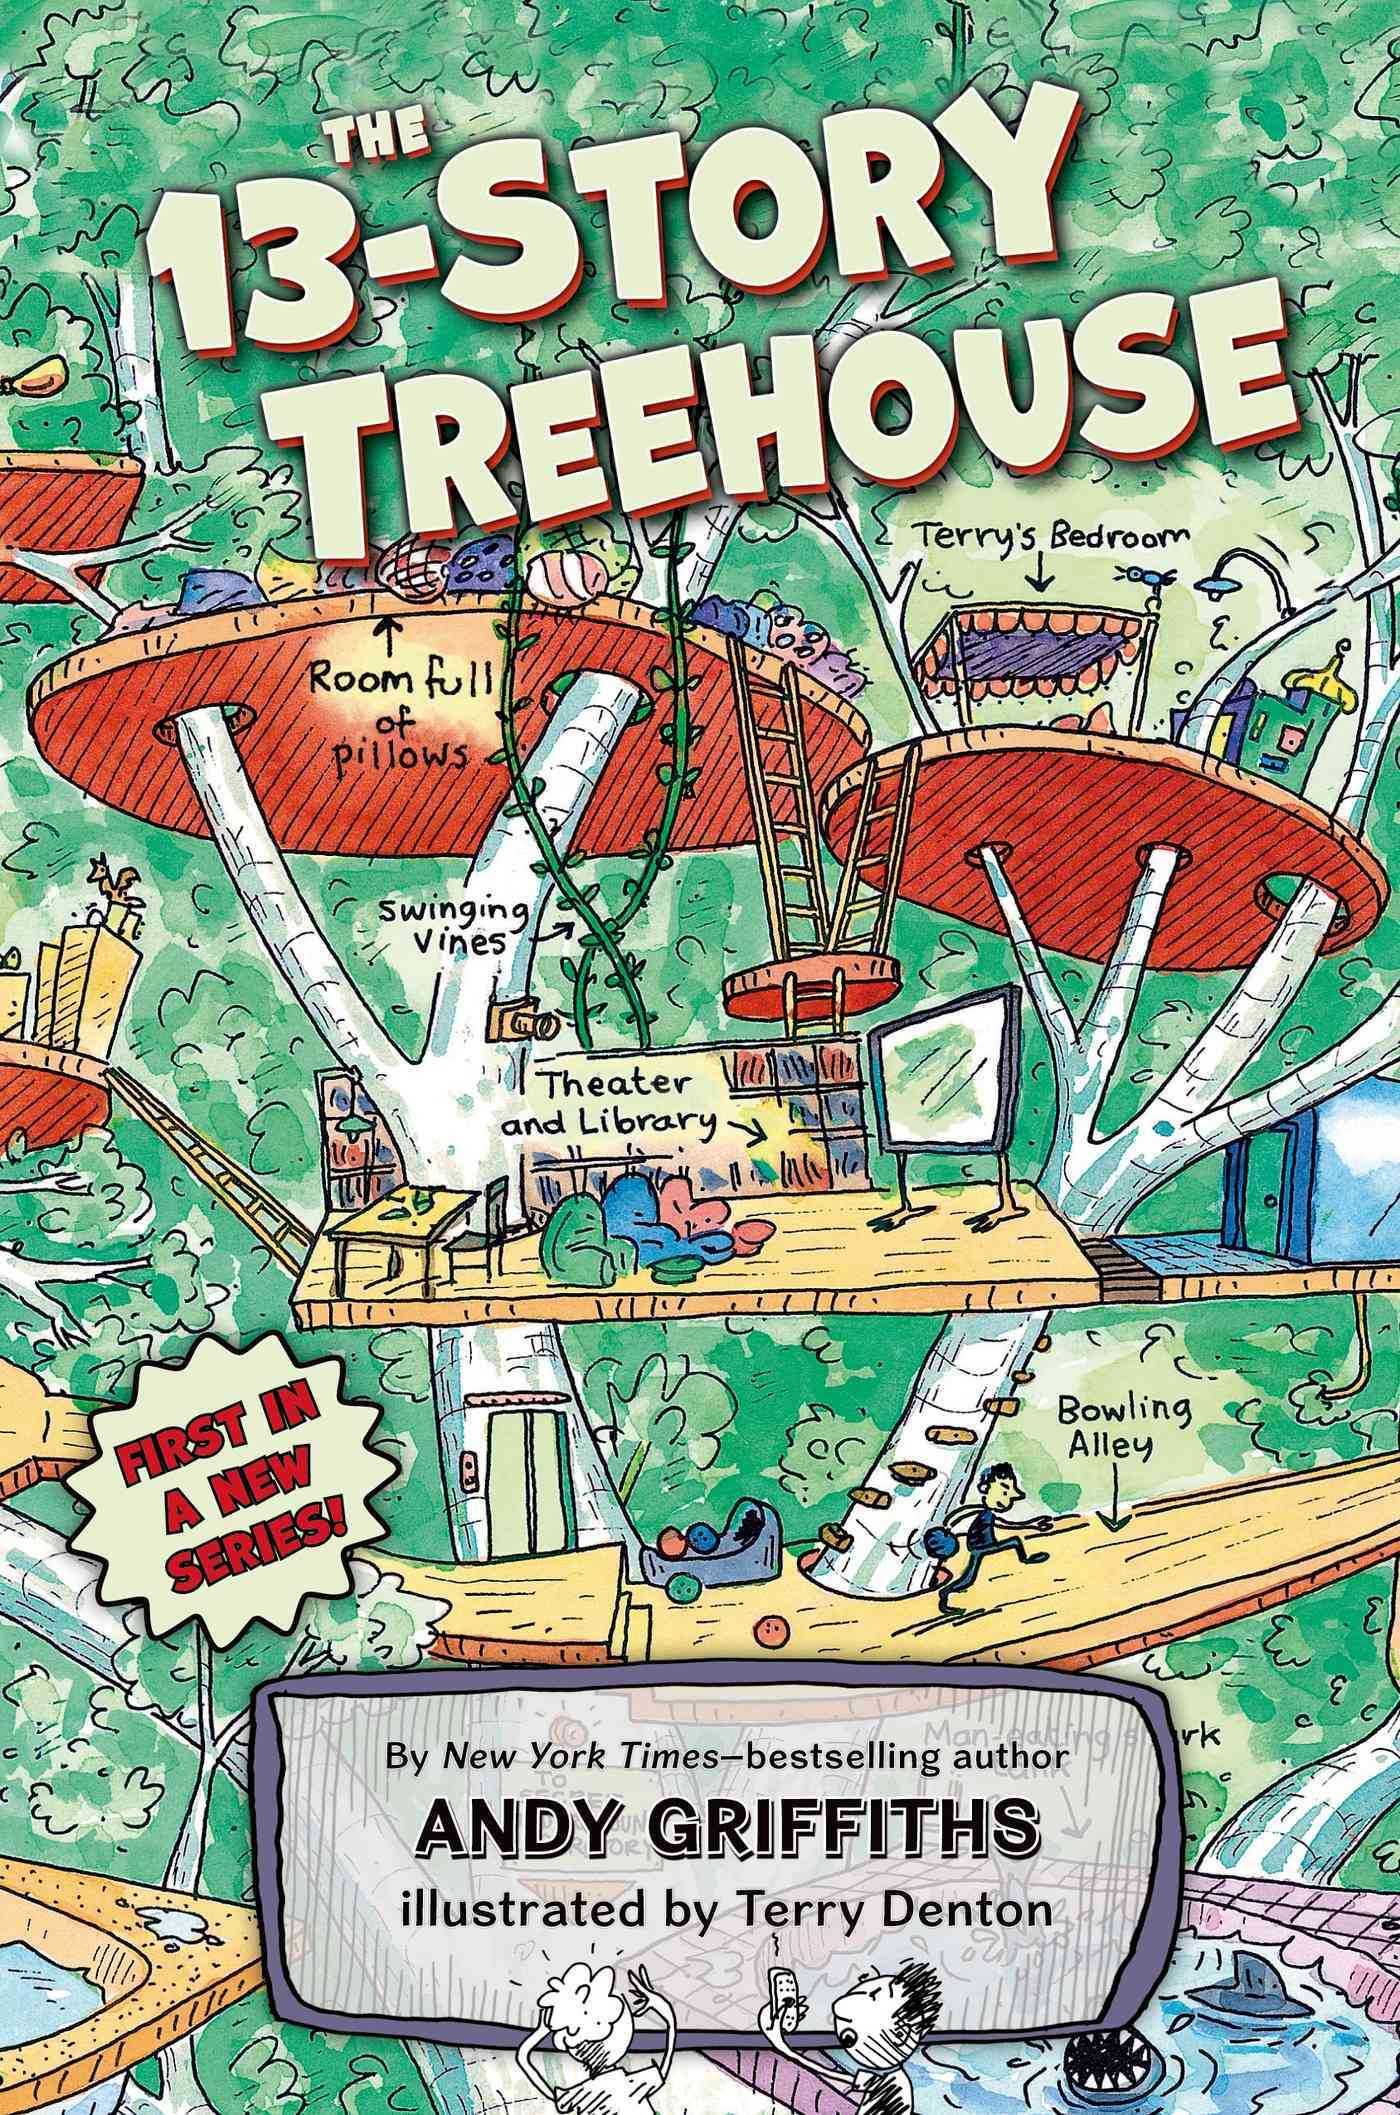 The 13-story Treehouse By Griffiths, Andy/ Denton, Terry (ILT)